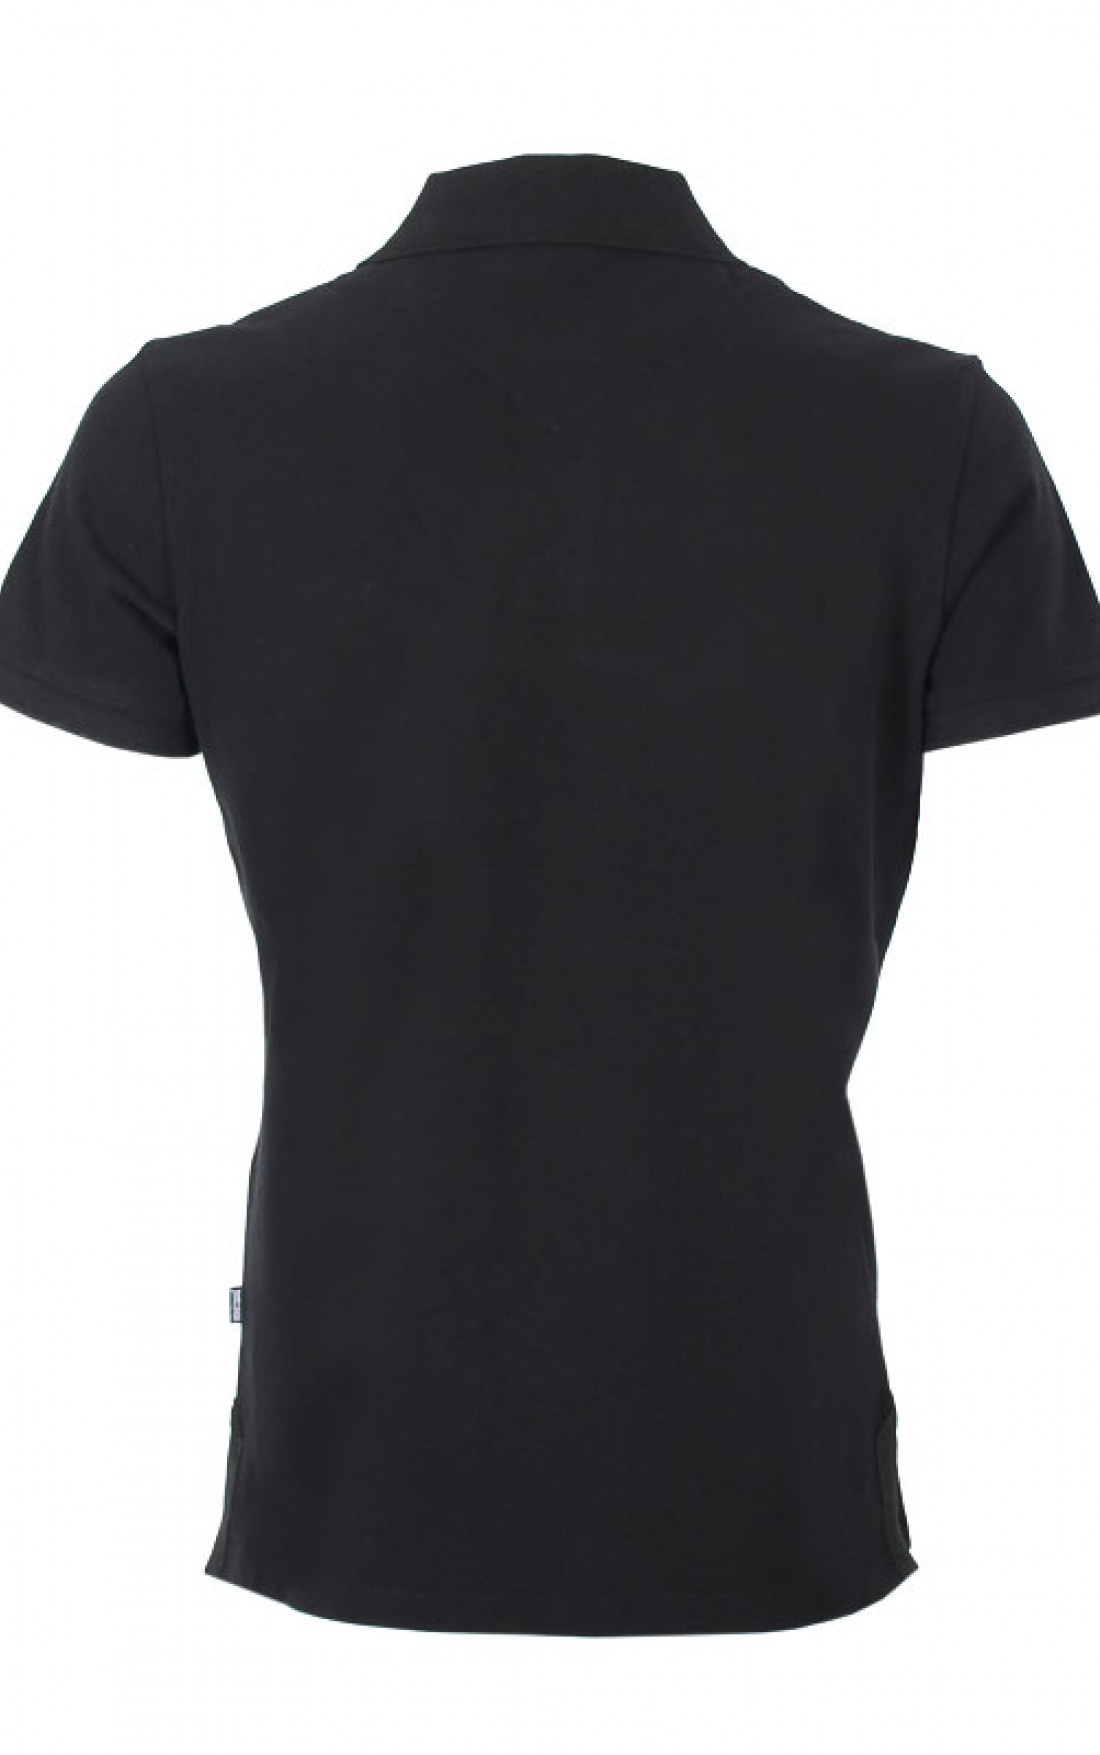 Just Cavalli Mens Black Polo Shirt Boudi Uk